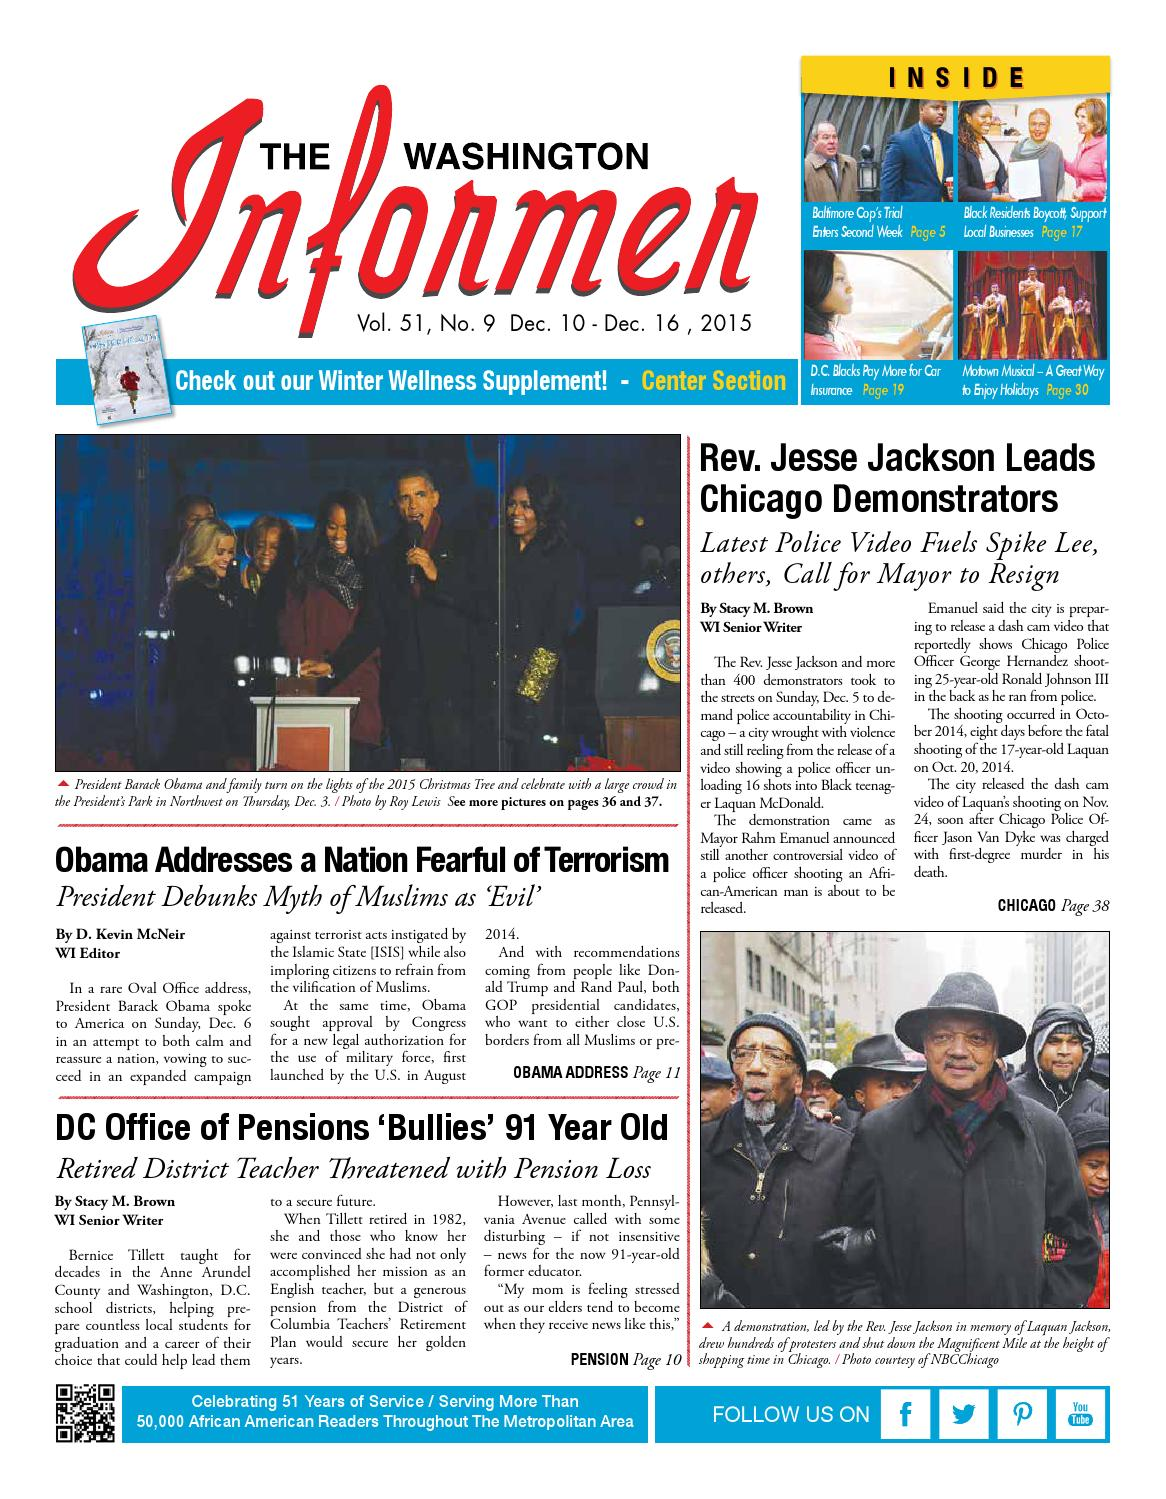 The Washington Informer - December 10, 2015 by The